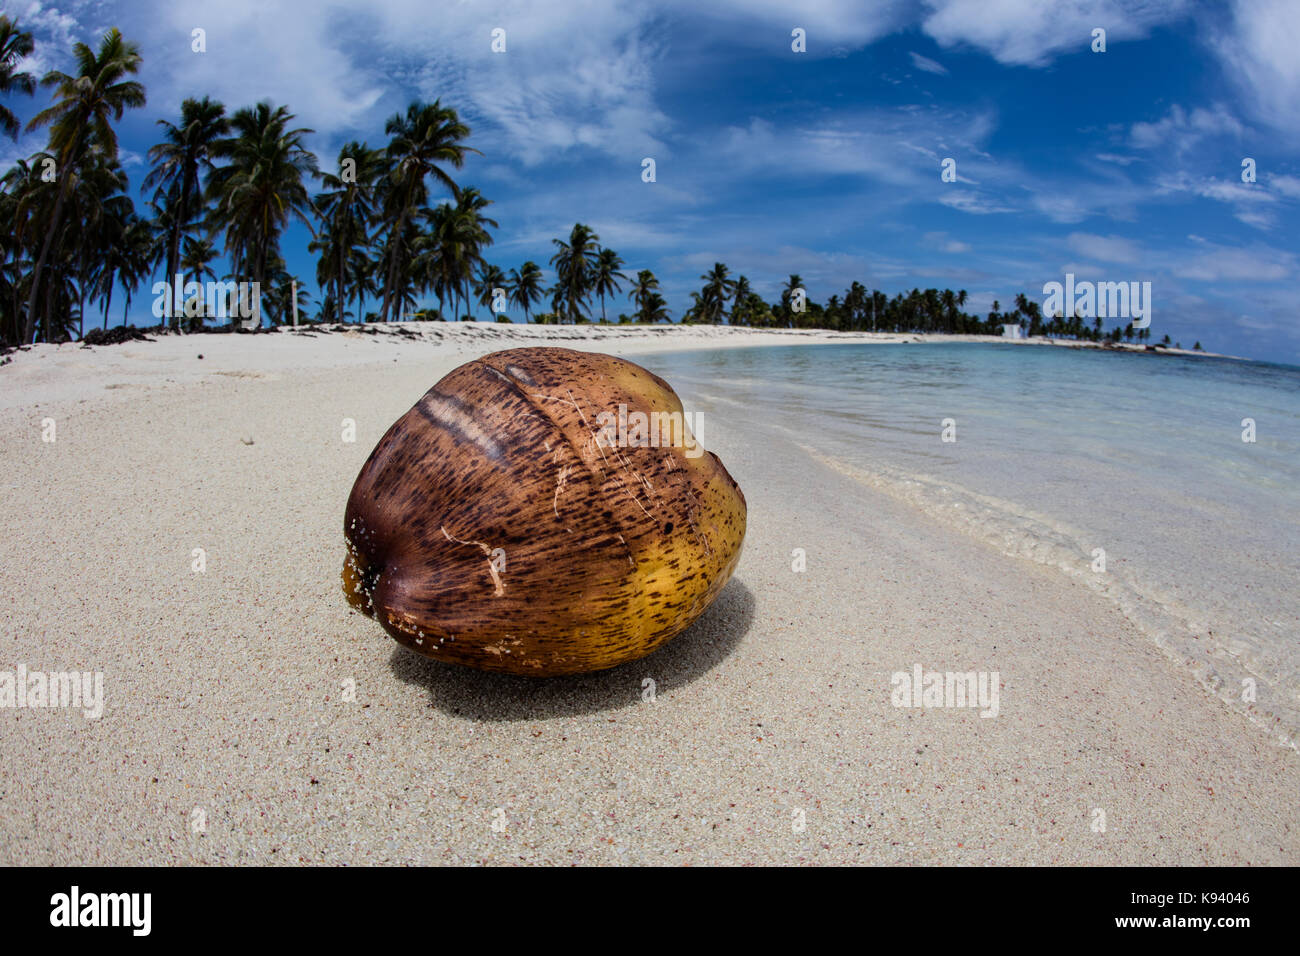 A coconut washes up on Half Moon Caye, a remote island in Lighthouse Reef Atoll in the Caribbean Sea. Coconuts can - Stock Image